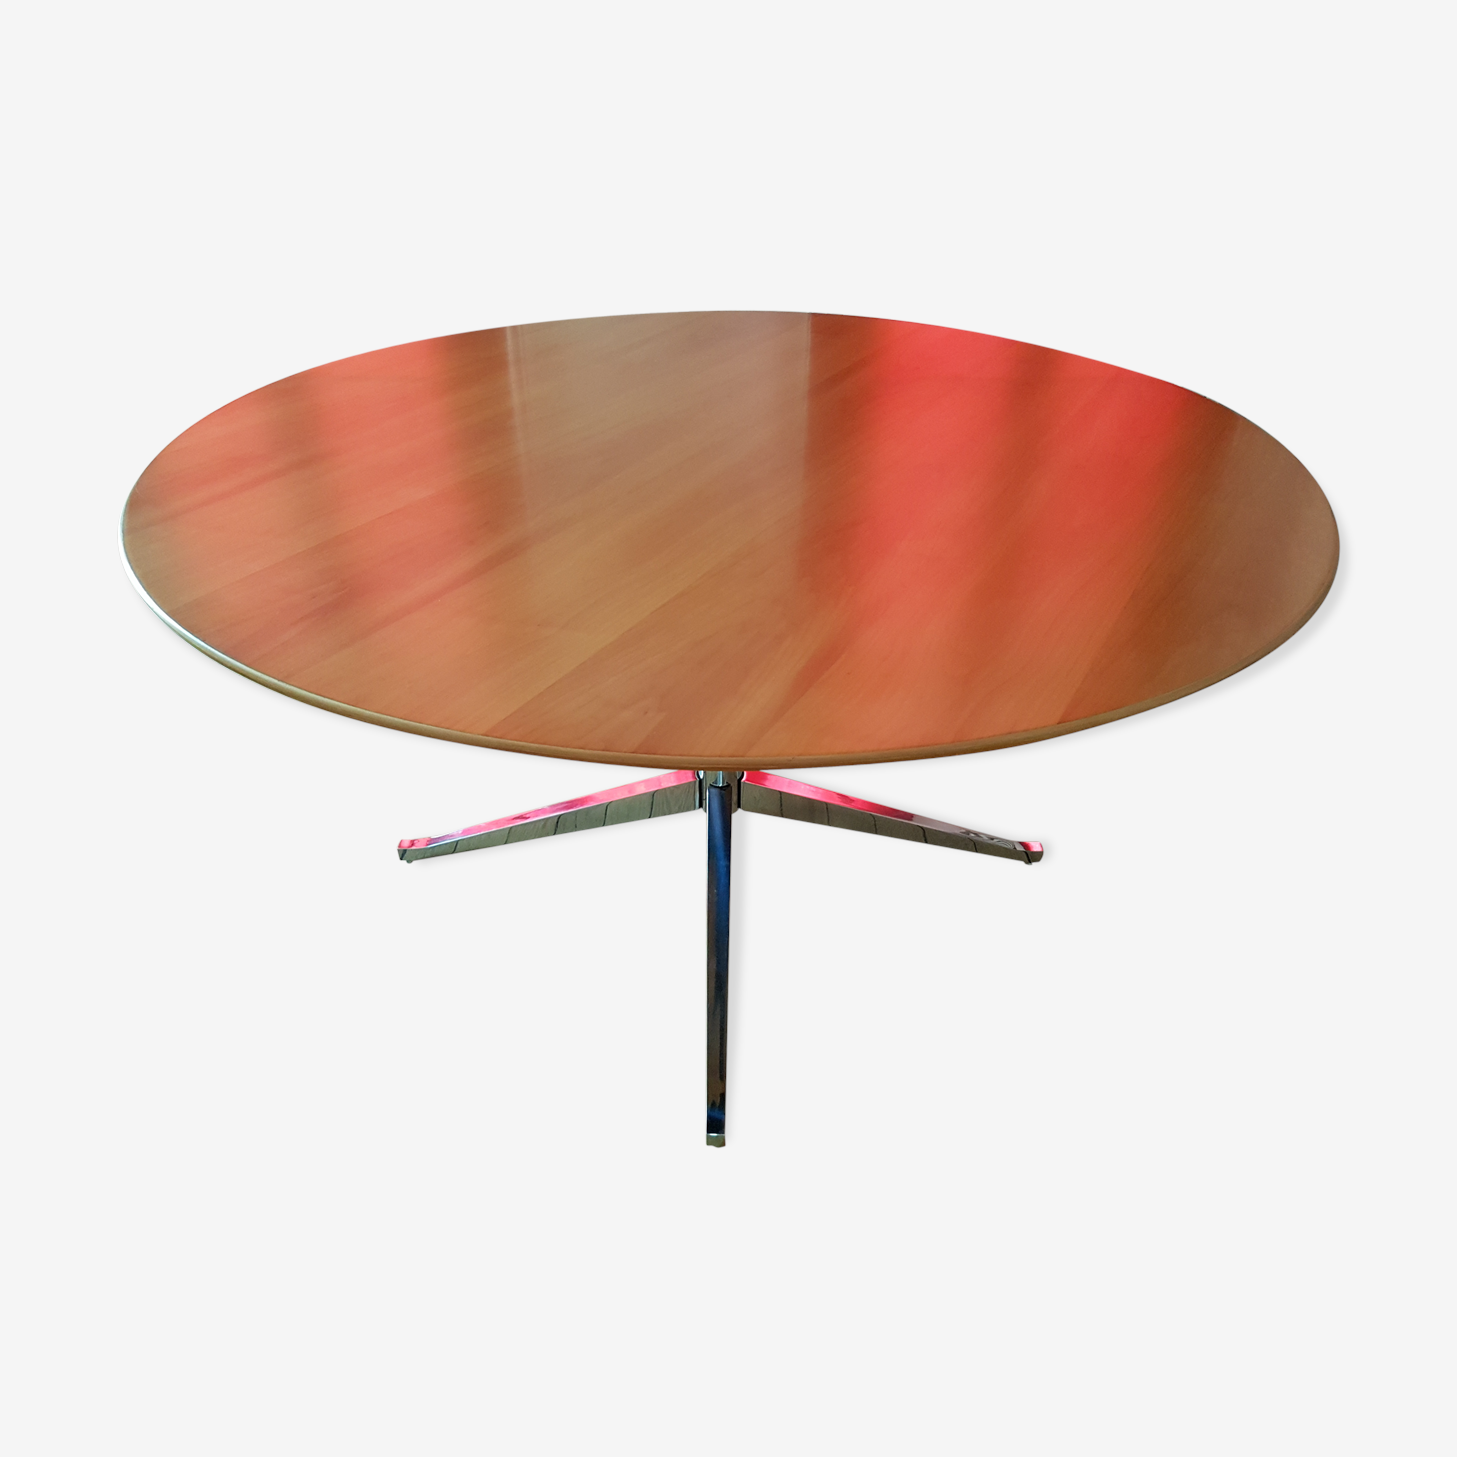 Knoll table model from 1961